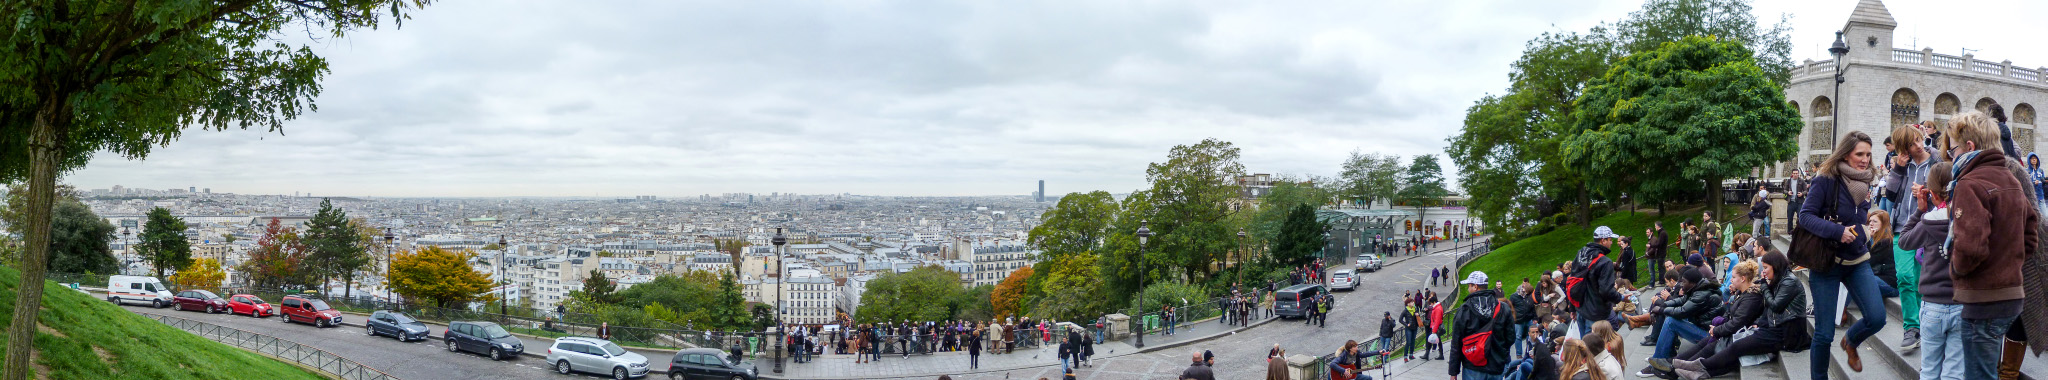 Panorama vom Sacré-Cœur in Paris